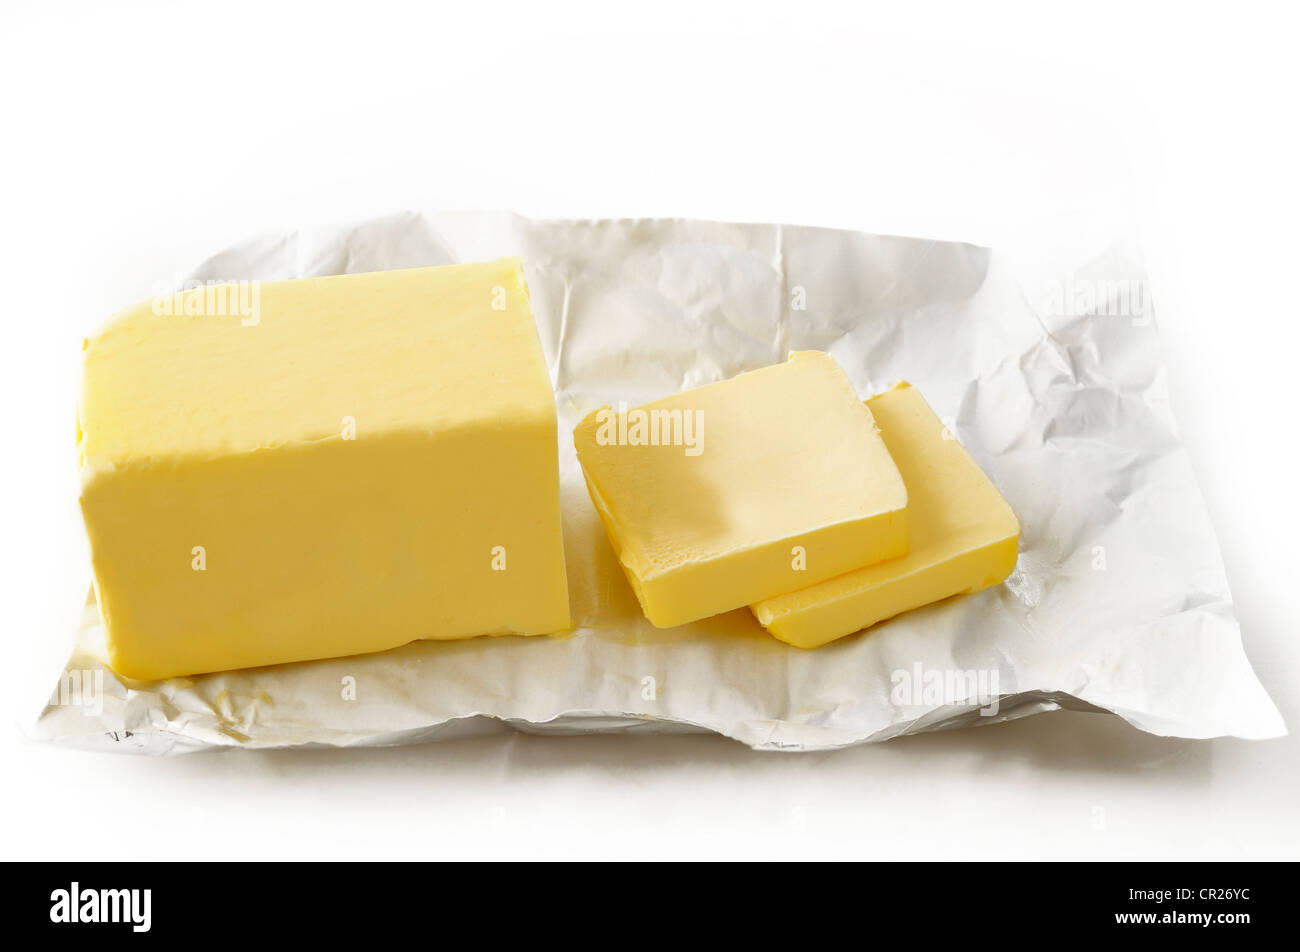 Piece of butter in paper on white background - Stock Image